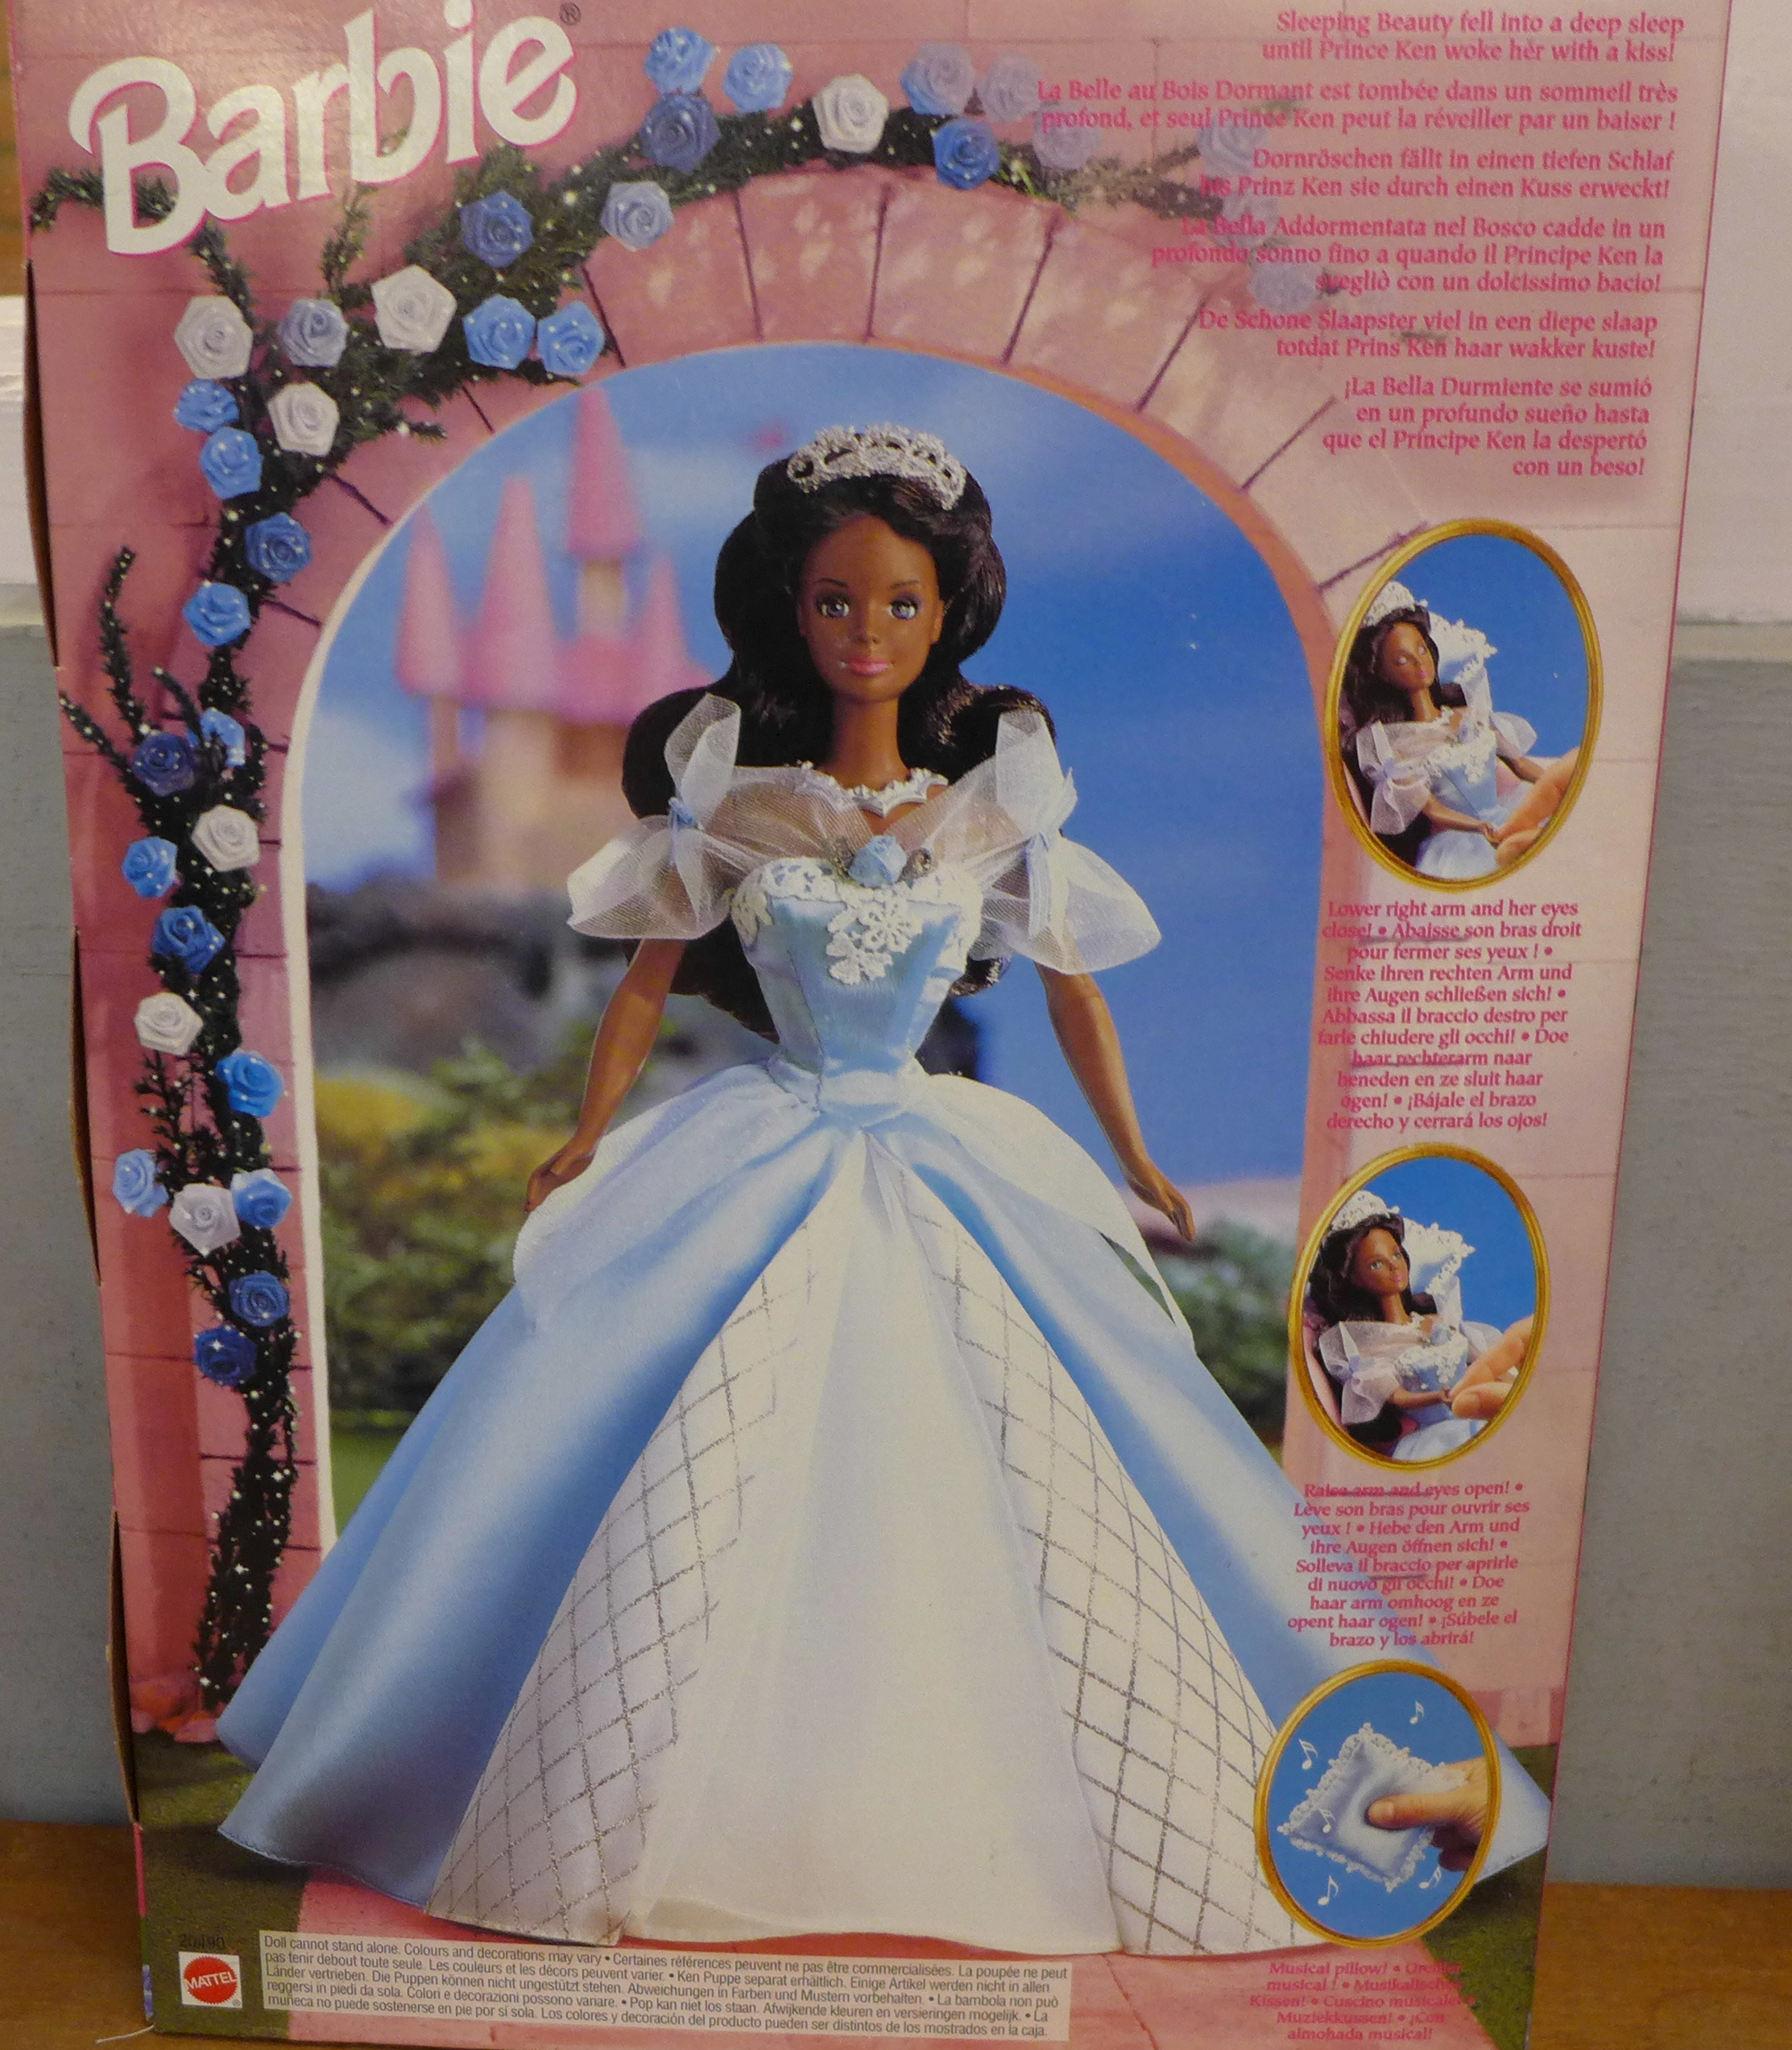 A Barbie doll, Black Sleeping Beauty, complete with box, 1998 - Image 3 of 3